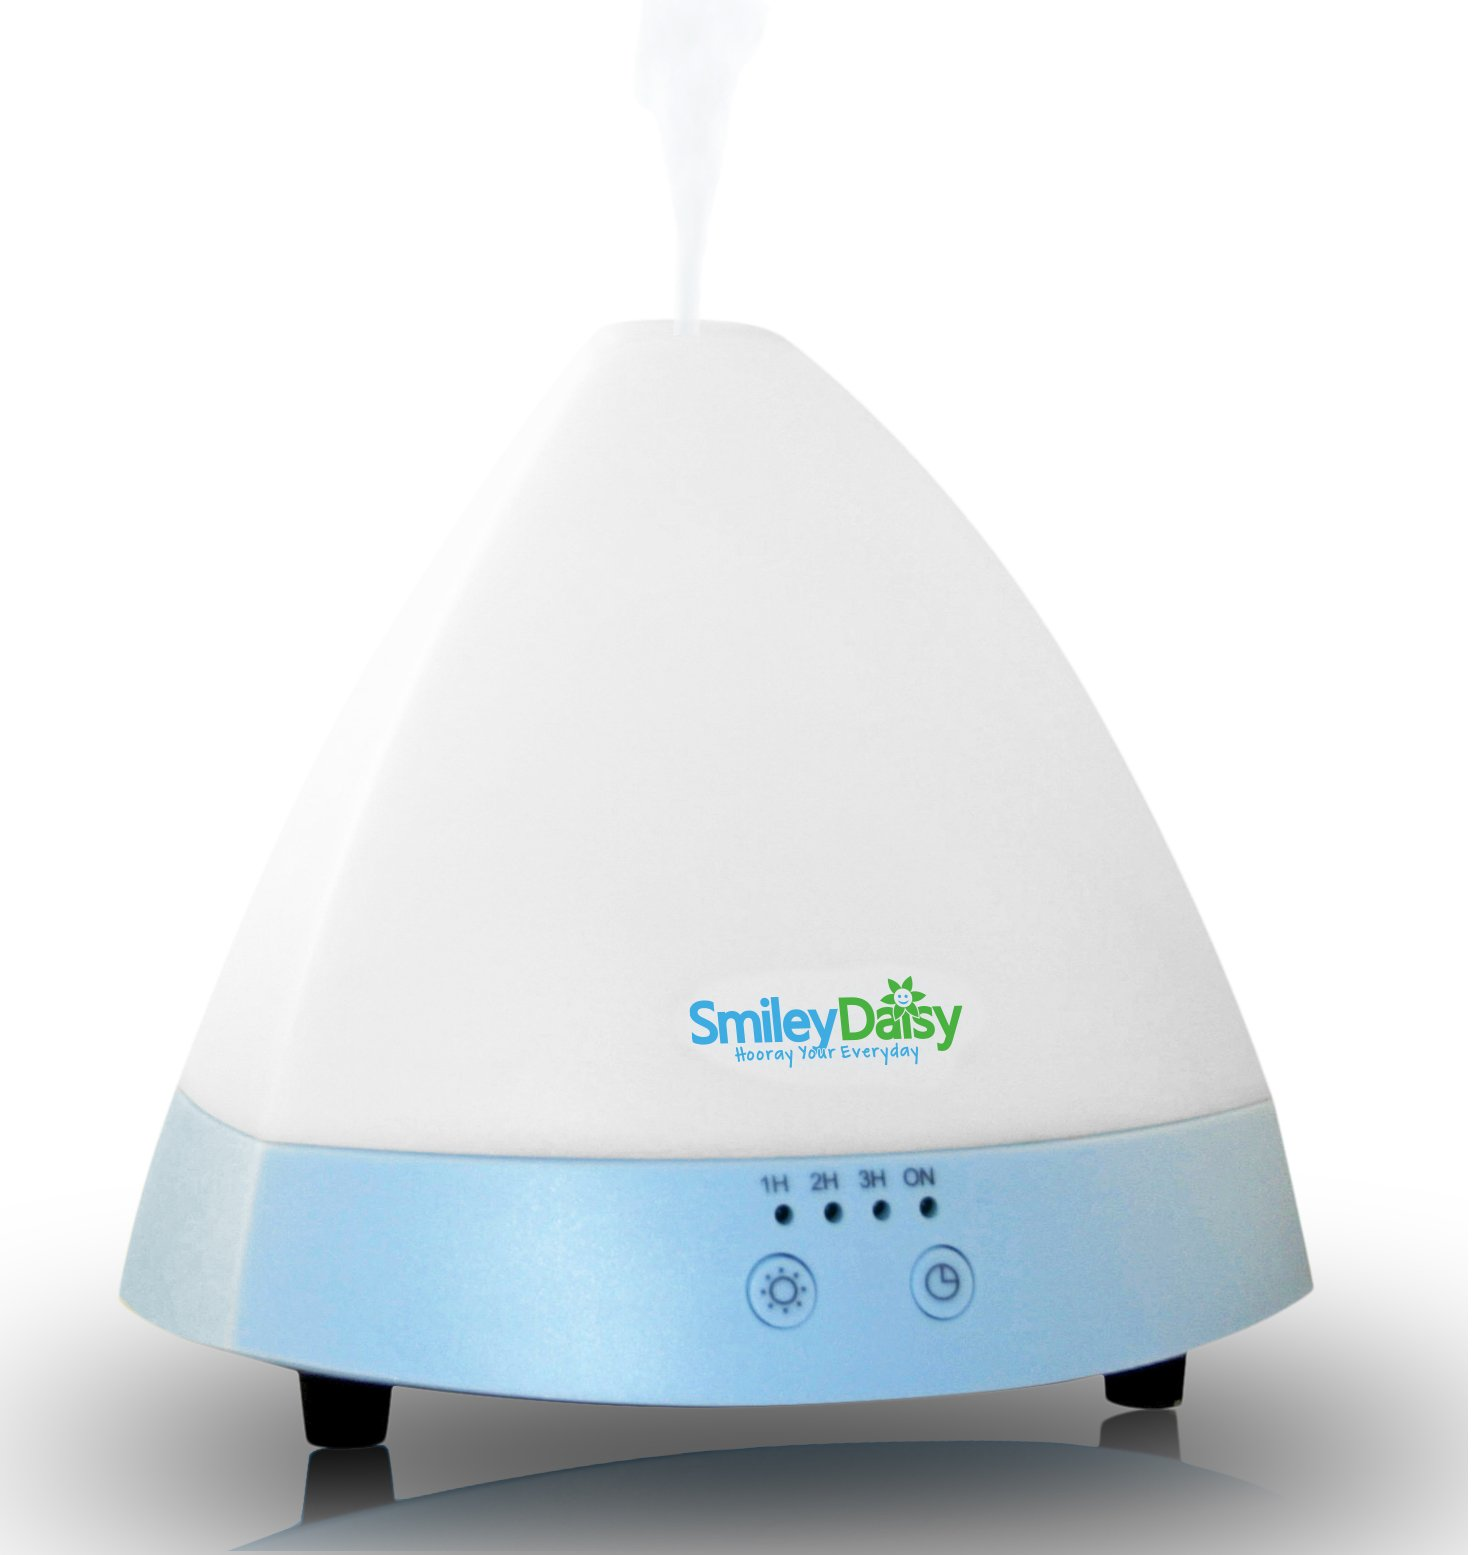 Smiley Daisy Pyramid Essential Oil Diffuser